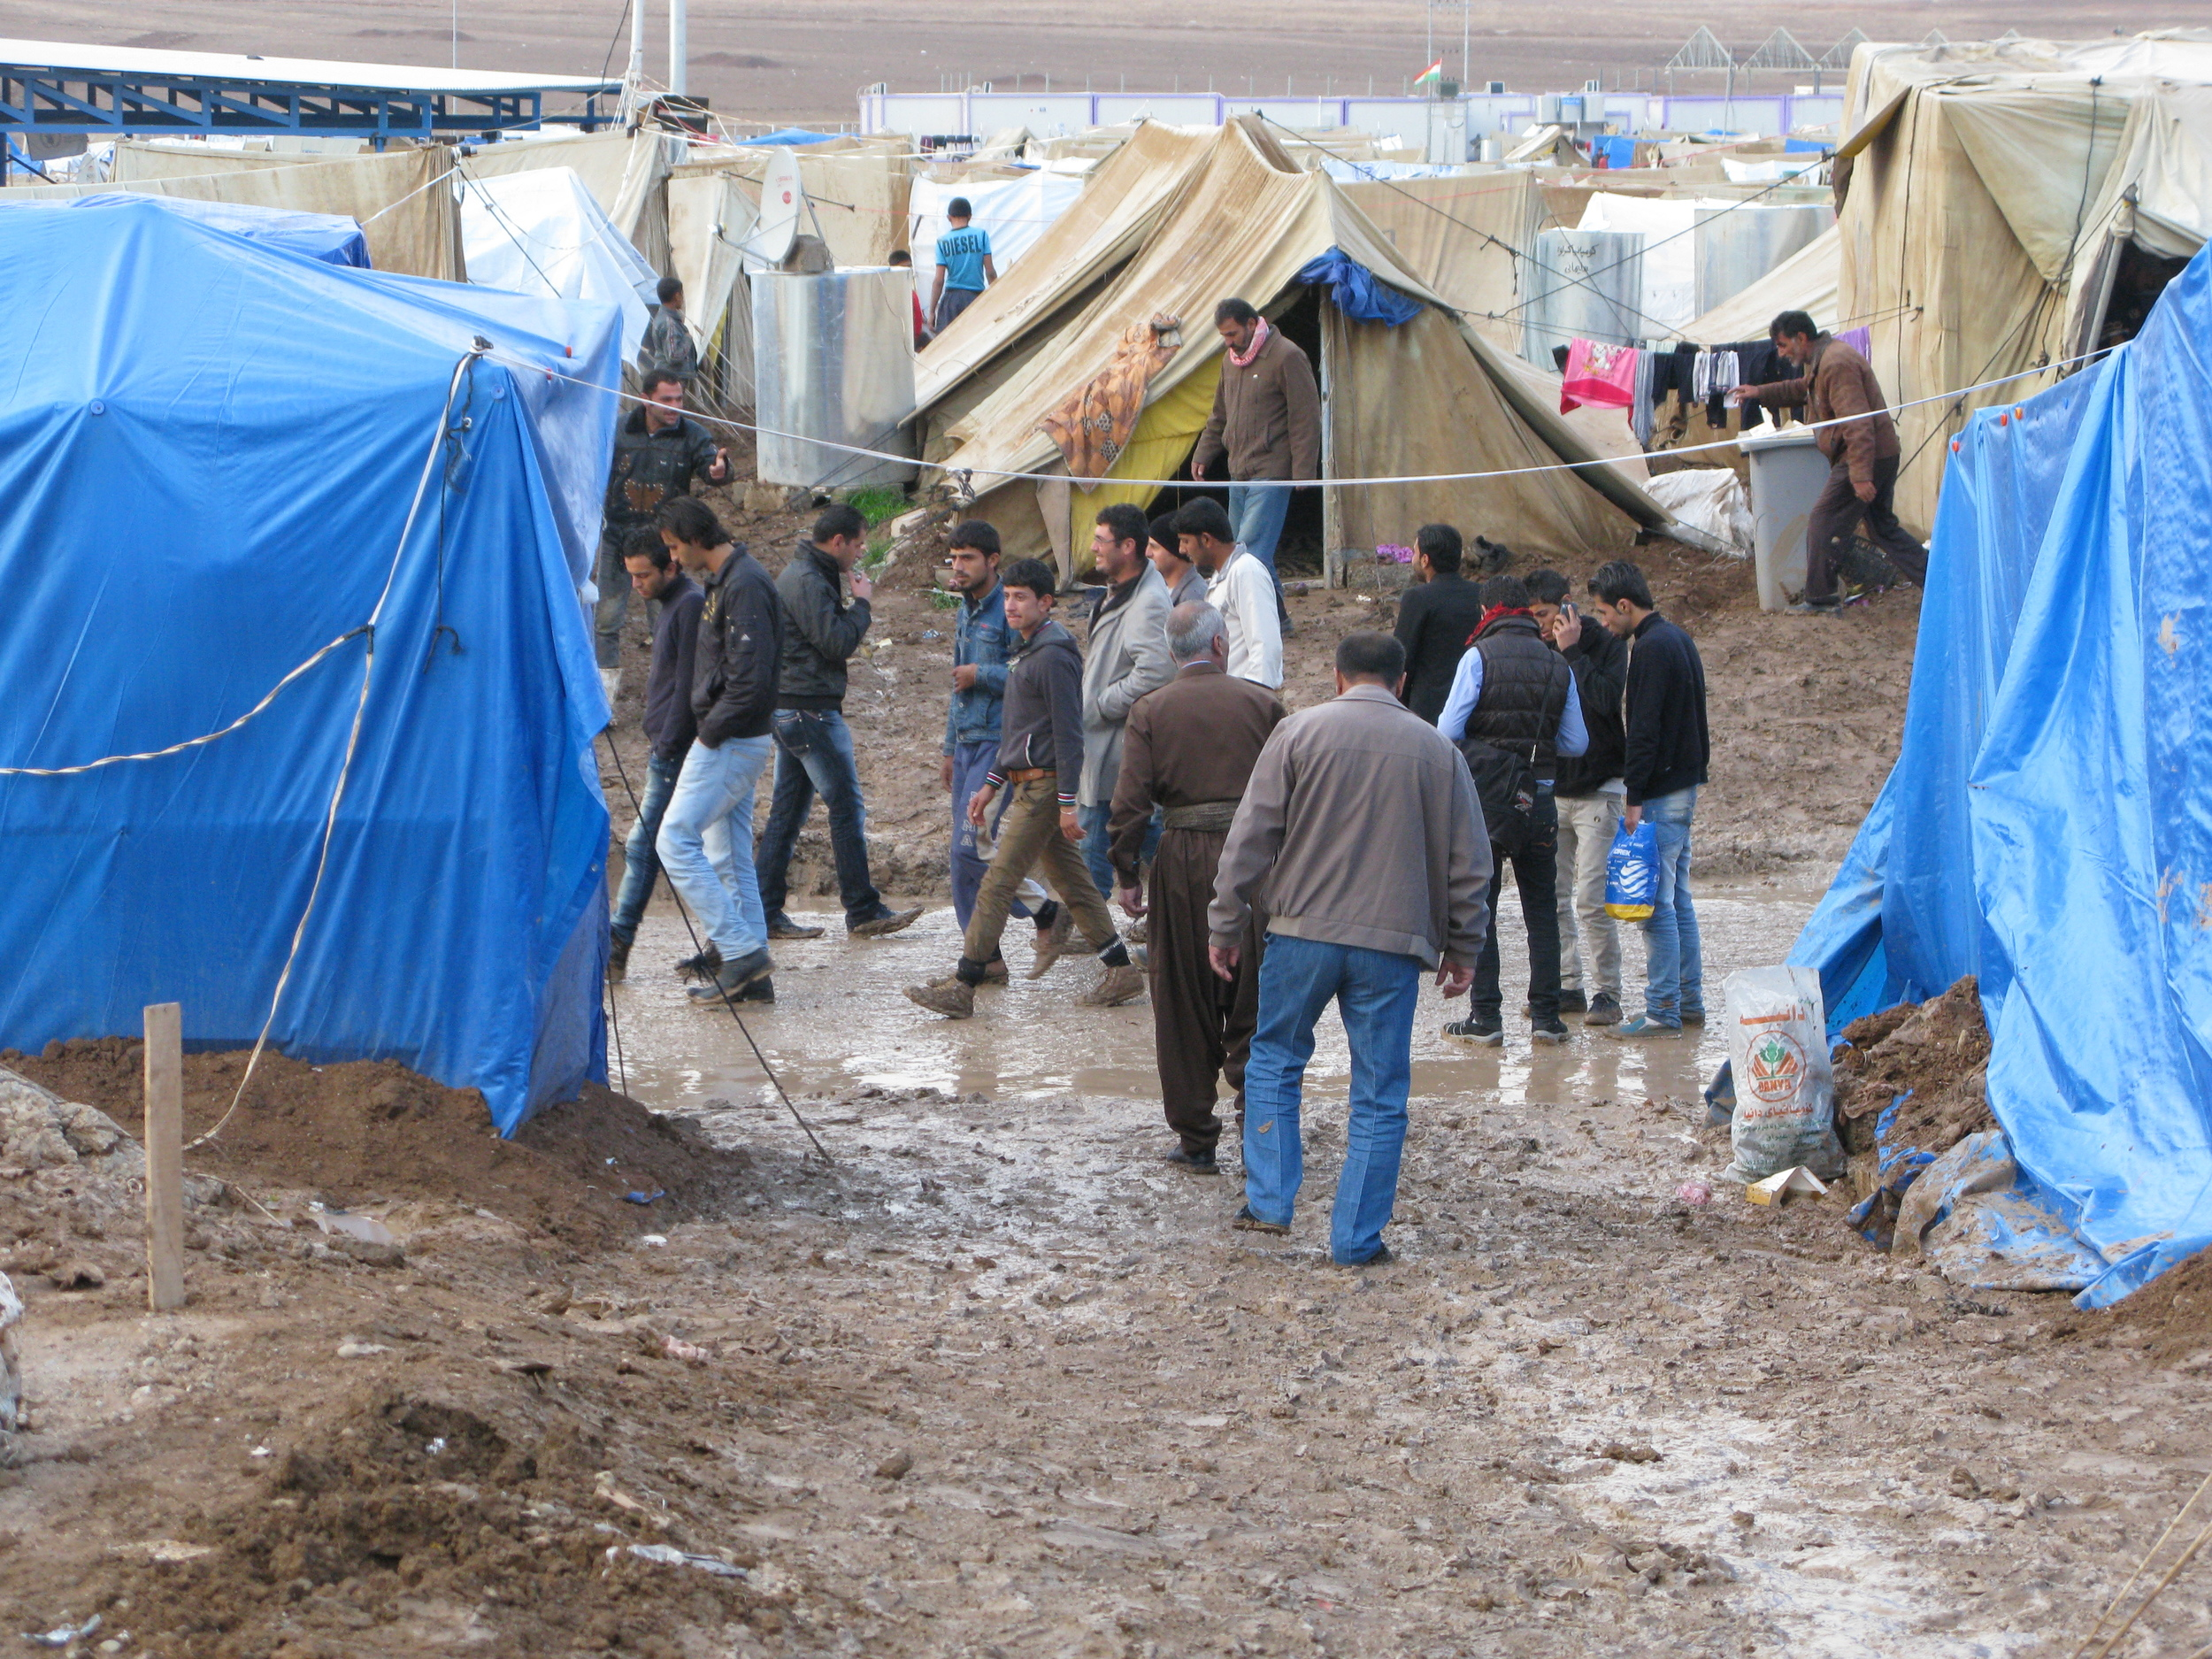 Syrian Refugee Camp - Make a difference